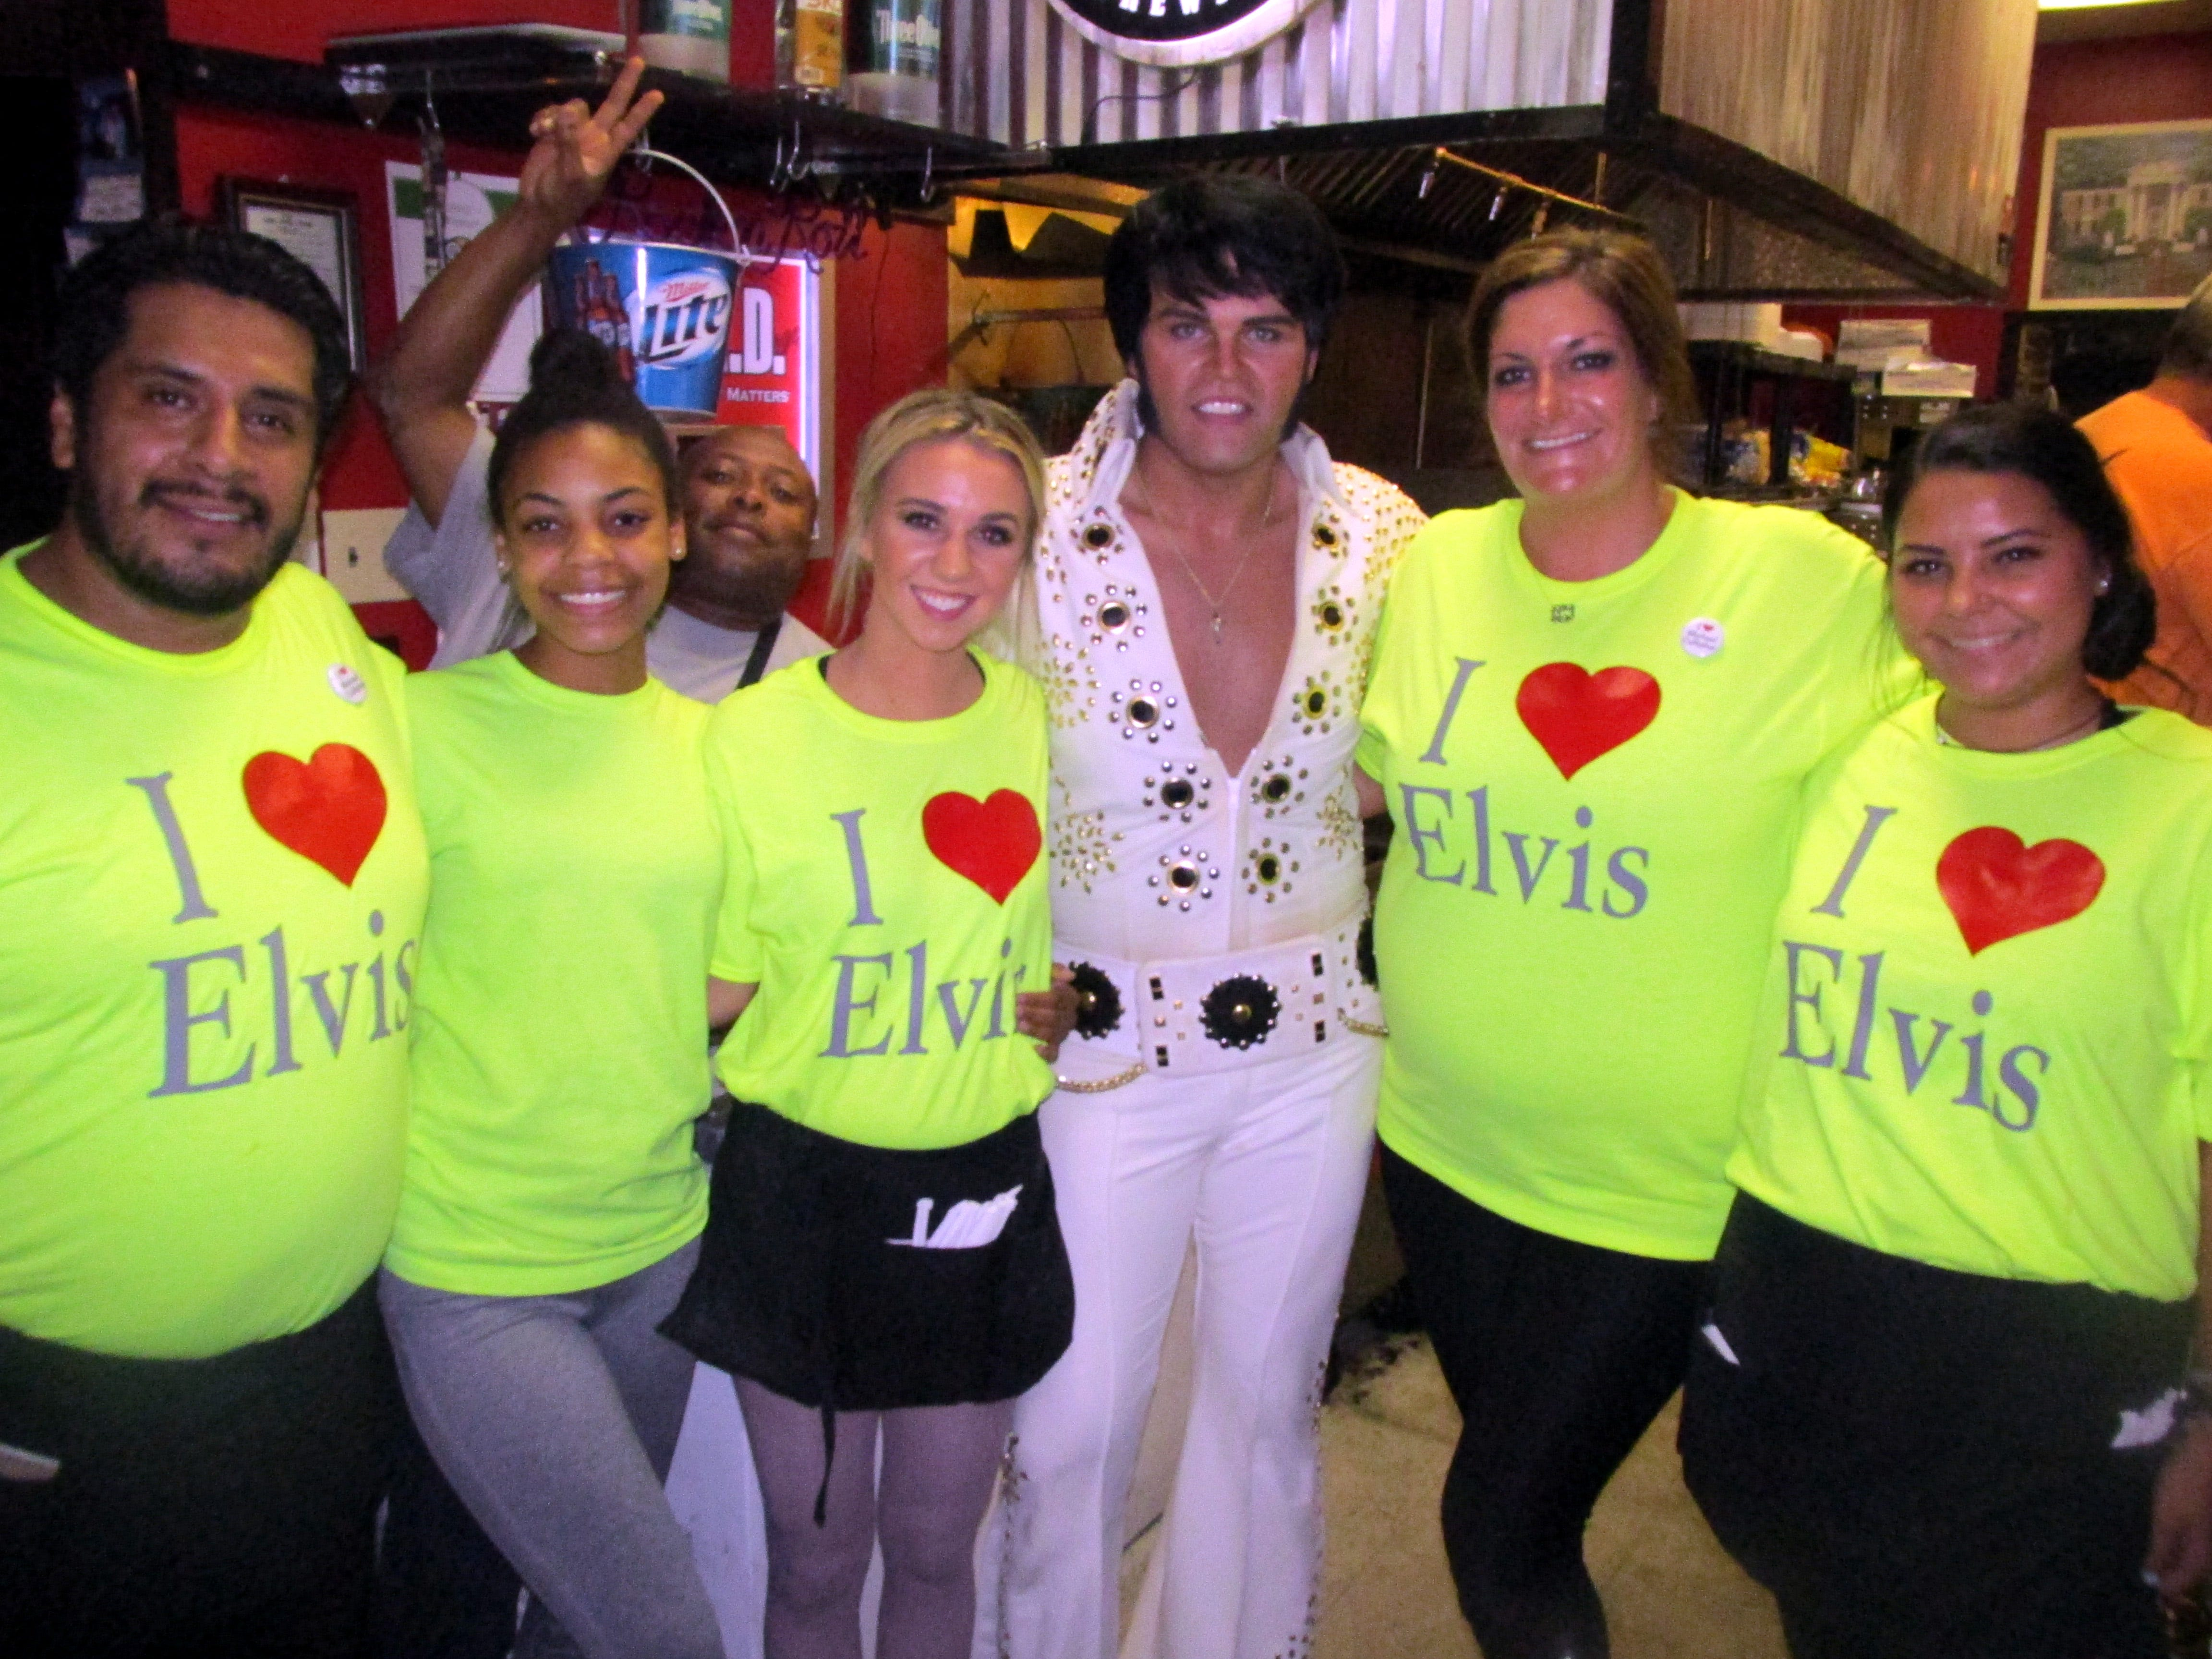 Elvis tribute artist Michael Cullipher performed at the Rock 'N Roll Cafe. With him are some of the restaurant employees: Rudy Martinez,  KeAndrea Foster, Marcelloous Everhart, McKenzie Bryant, Hannah Hastings and Rebecca Kettler. (Michael Donahue/Commercial Appeal) Aug. 10 2016